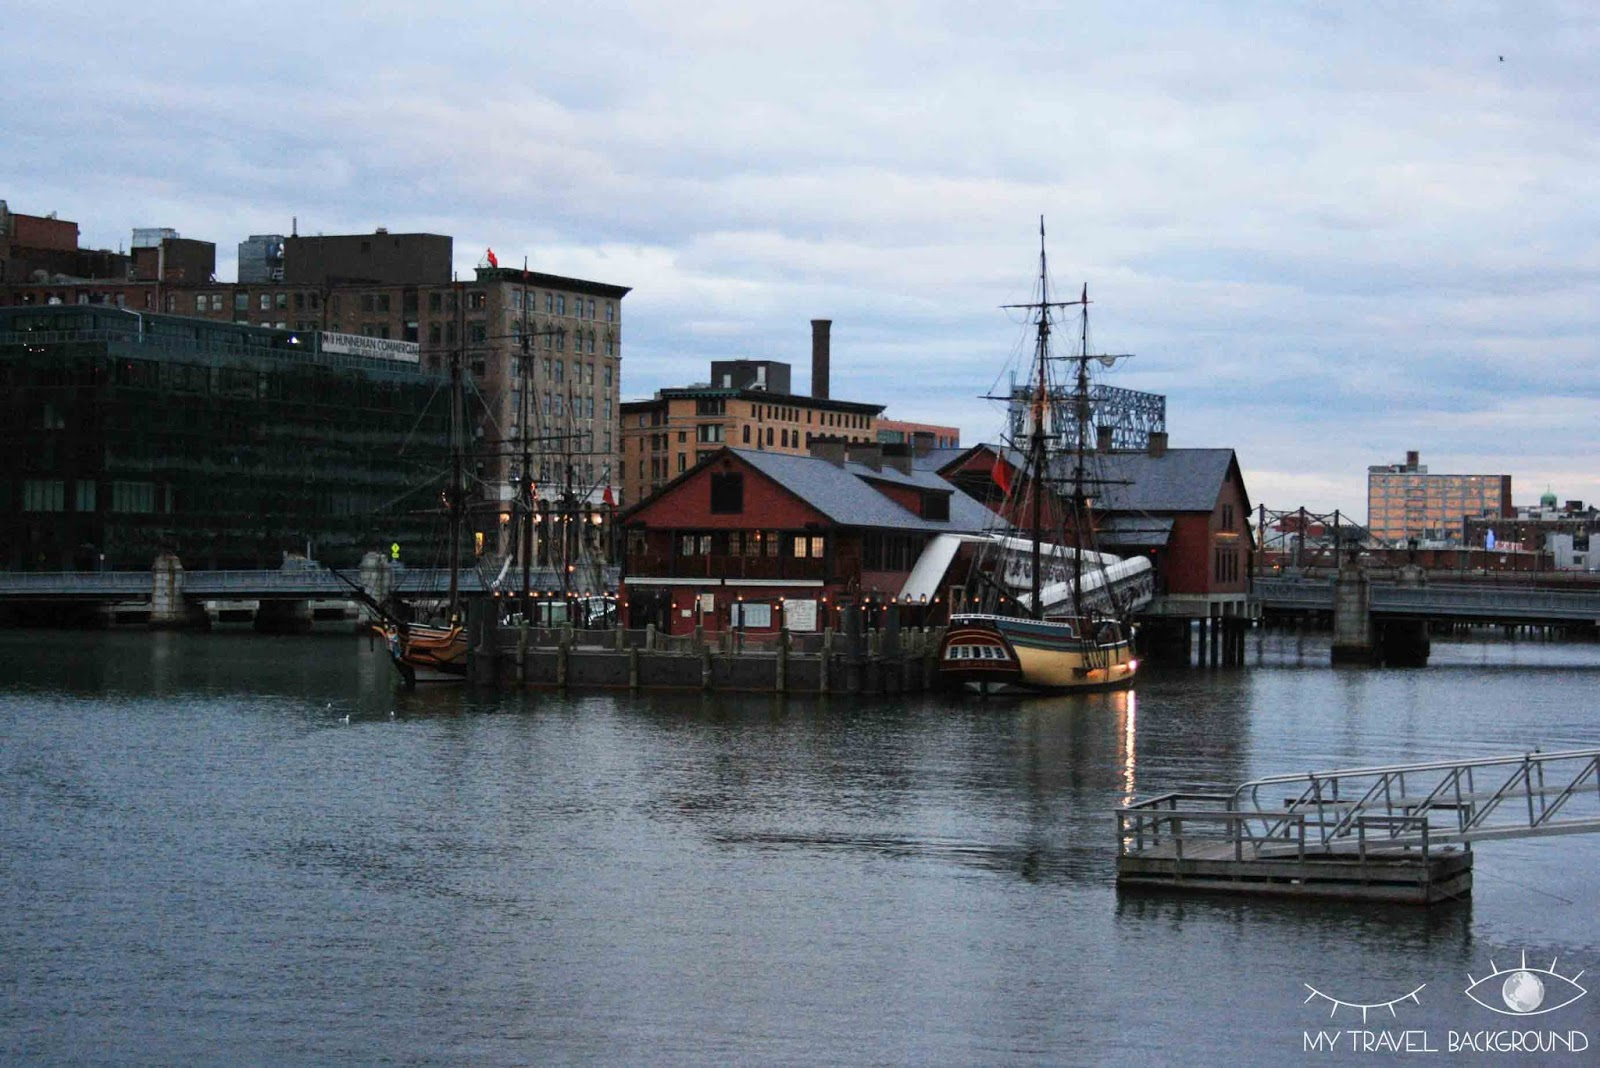 My Travel Background : Boston Tea Party Ship and Museum